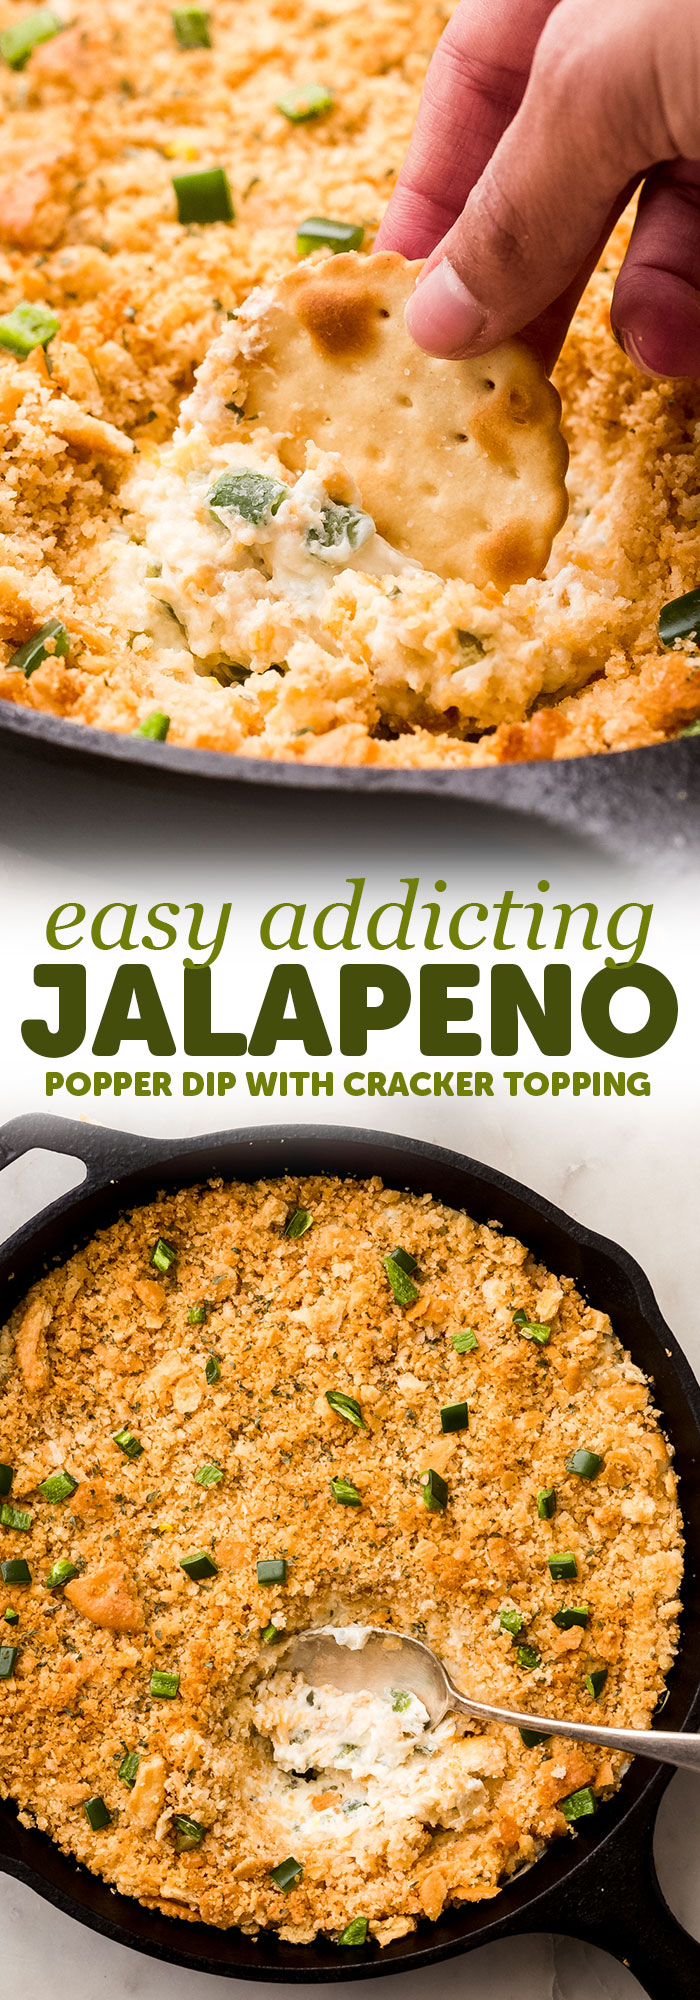 Addicting Jalapeno Popper Dip - My jalapeño popper dip is loaded with pickled and fresh jalapeños but doesn't bring a whole lot of heat, serve it with crackers or tortilla chips and watch the crowd go wild! #jalapenopopperdip #dip #superbowl #gameday #footballfood #holiday #dips | Littlespicejar.com